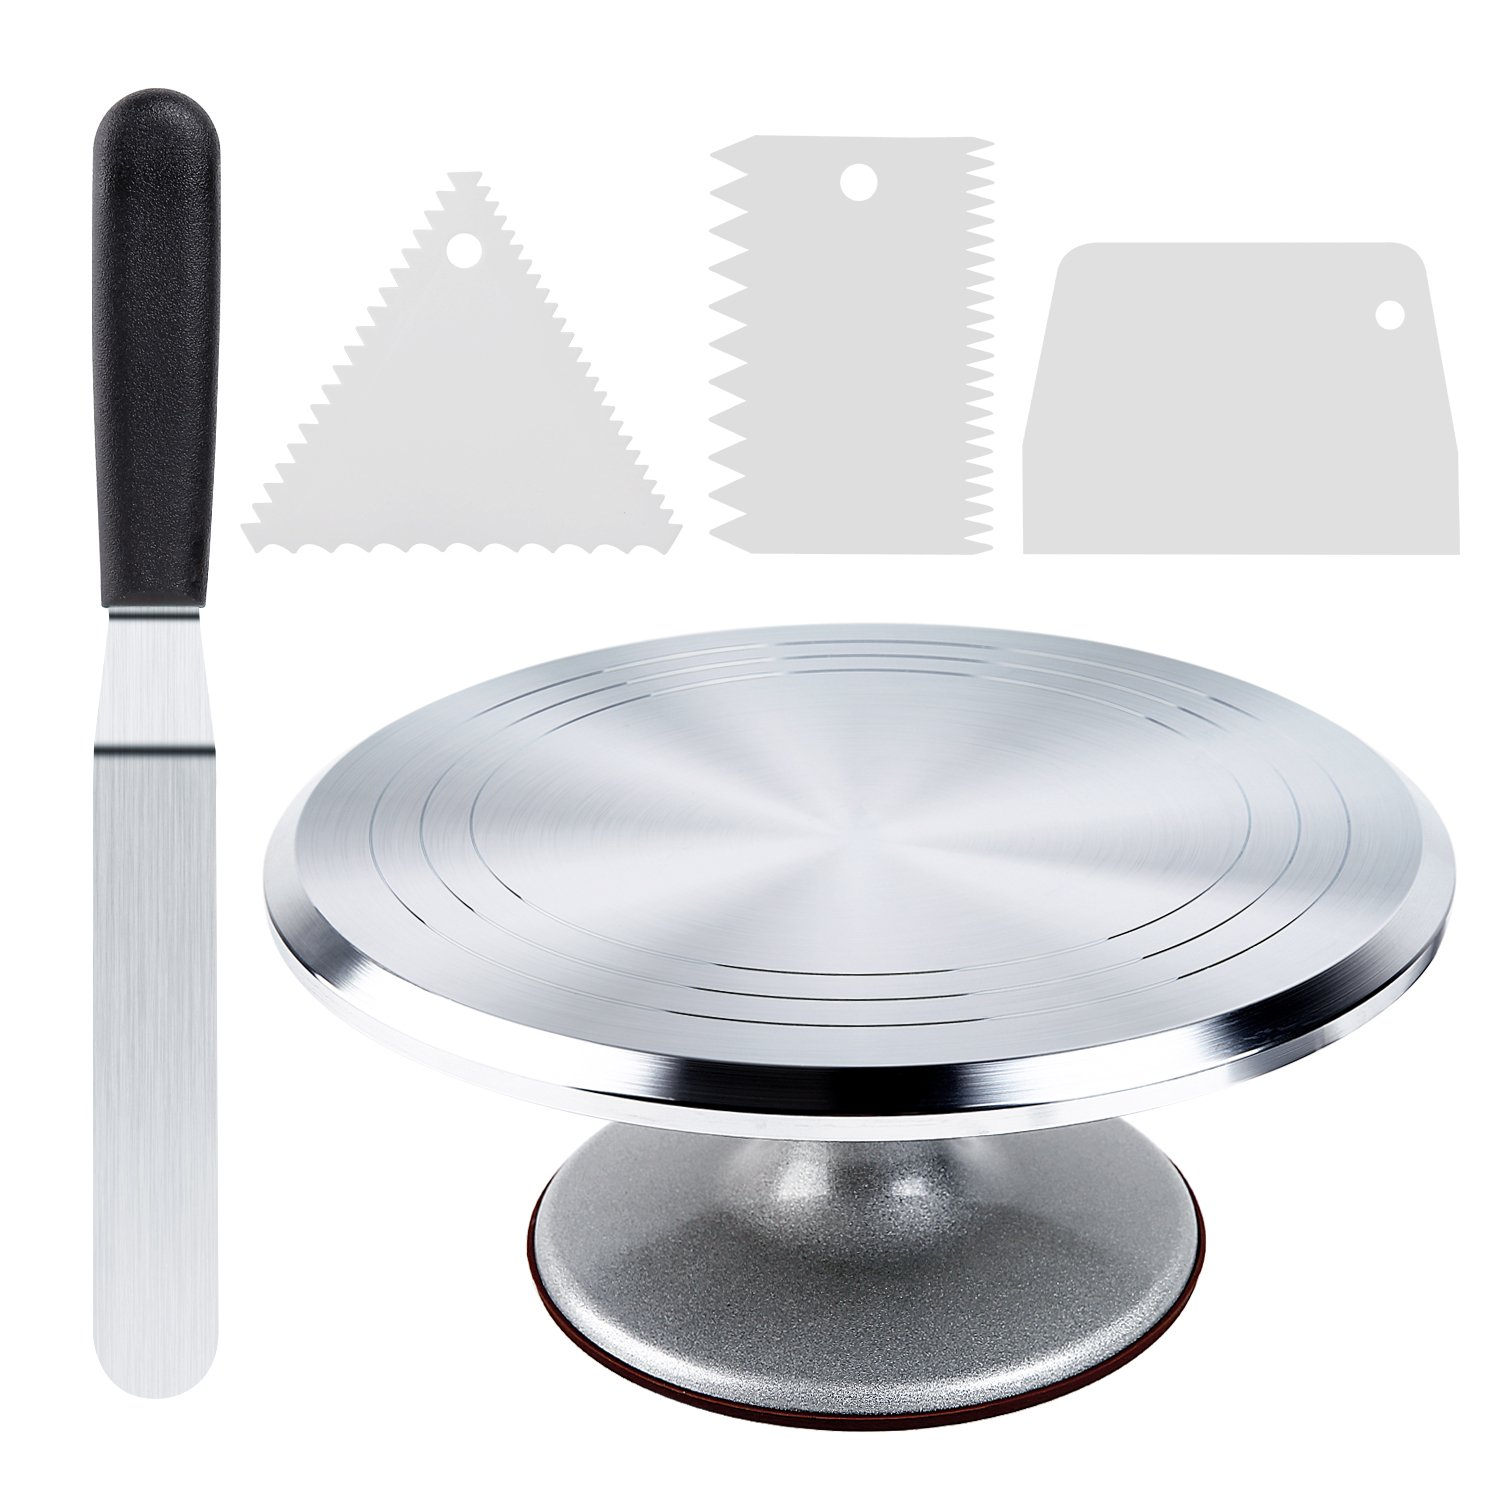 Cake Stand, Ohuhu Aluminium Revolving Cake Turntable 12'' Rotating Cake Decorating Stand with Angled Icing Spatula and Comb Icing Smoother, Baking Cake Decorating Supplies by Ohuhu